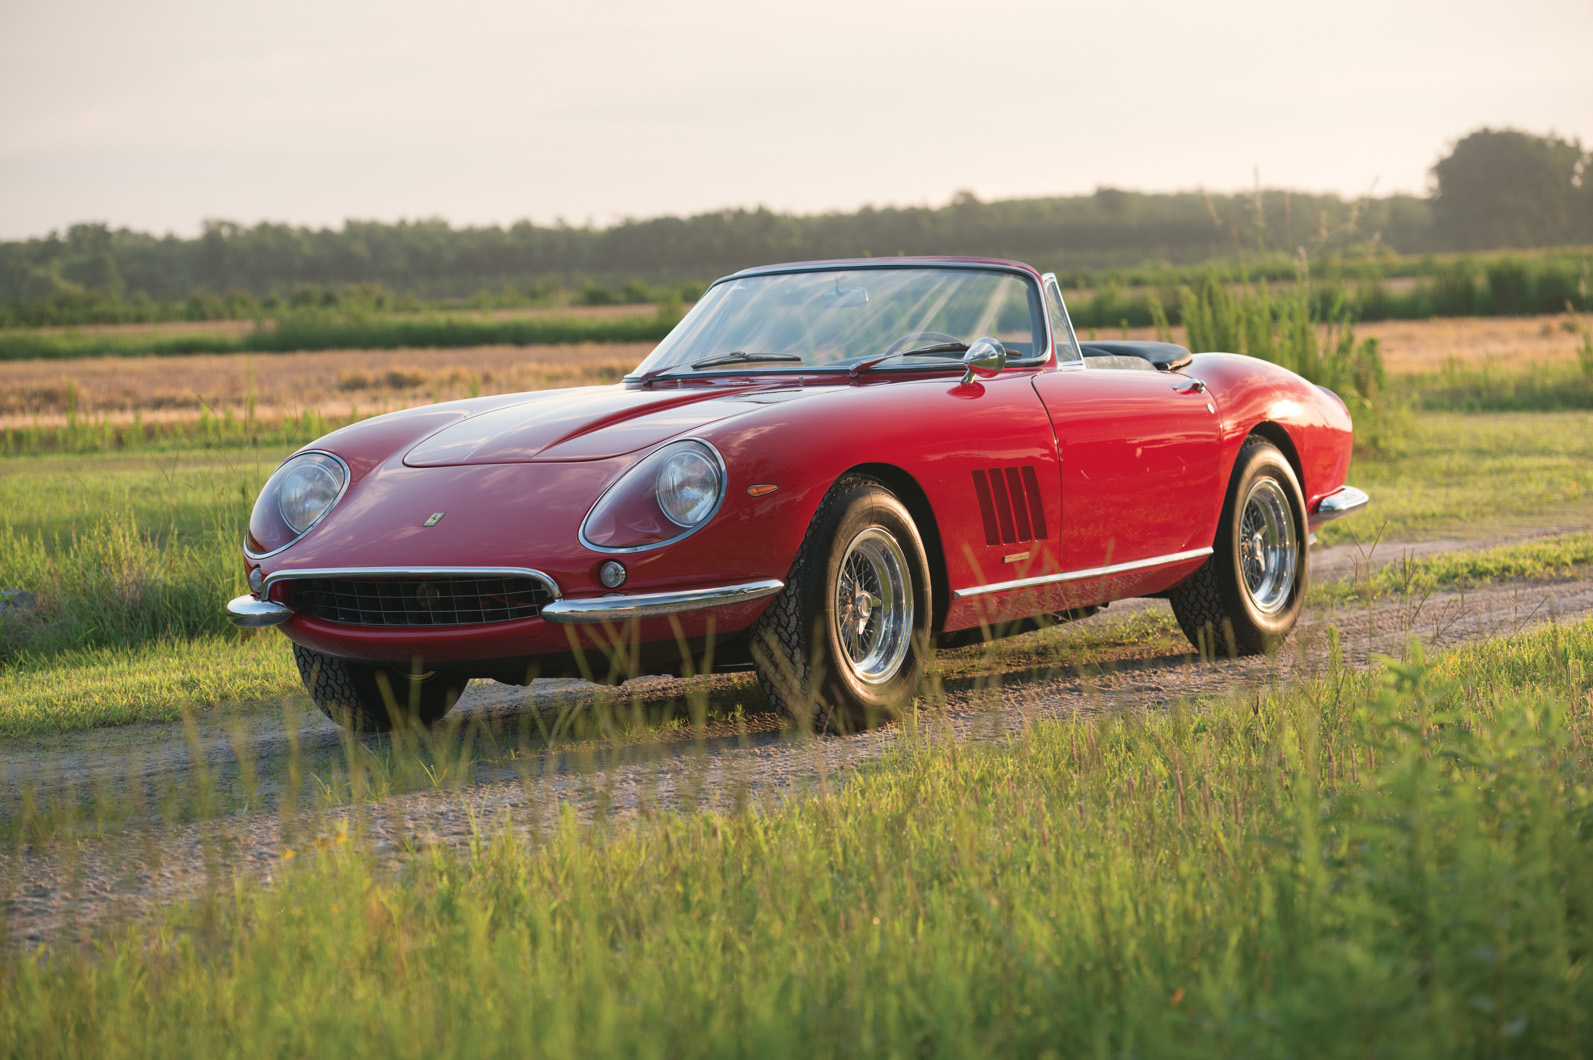 At $27.5 Million USD, the most valuable road car ever sold at auction. Image courtesy of RM Auctions.